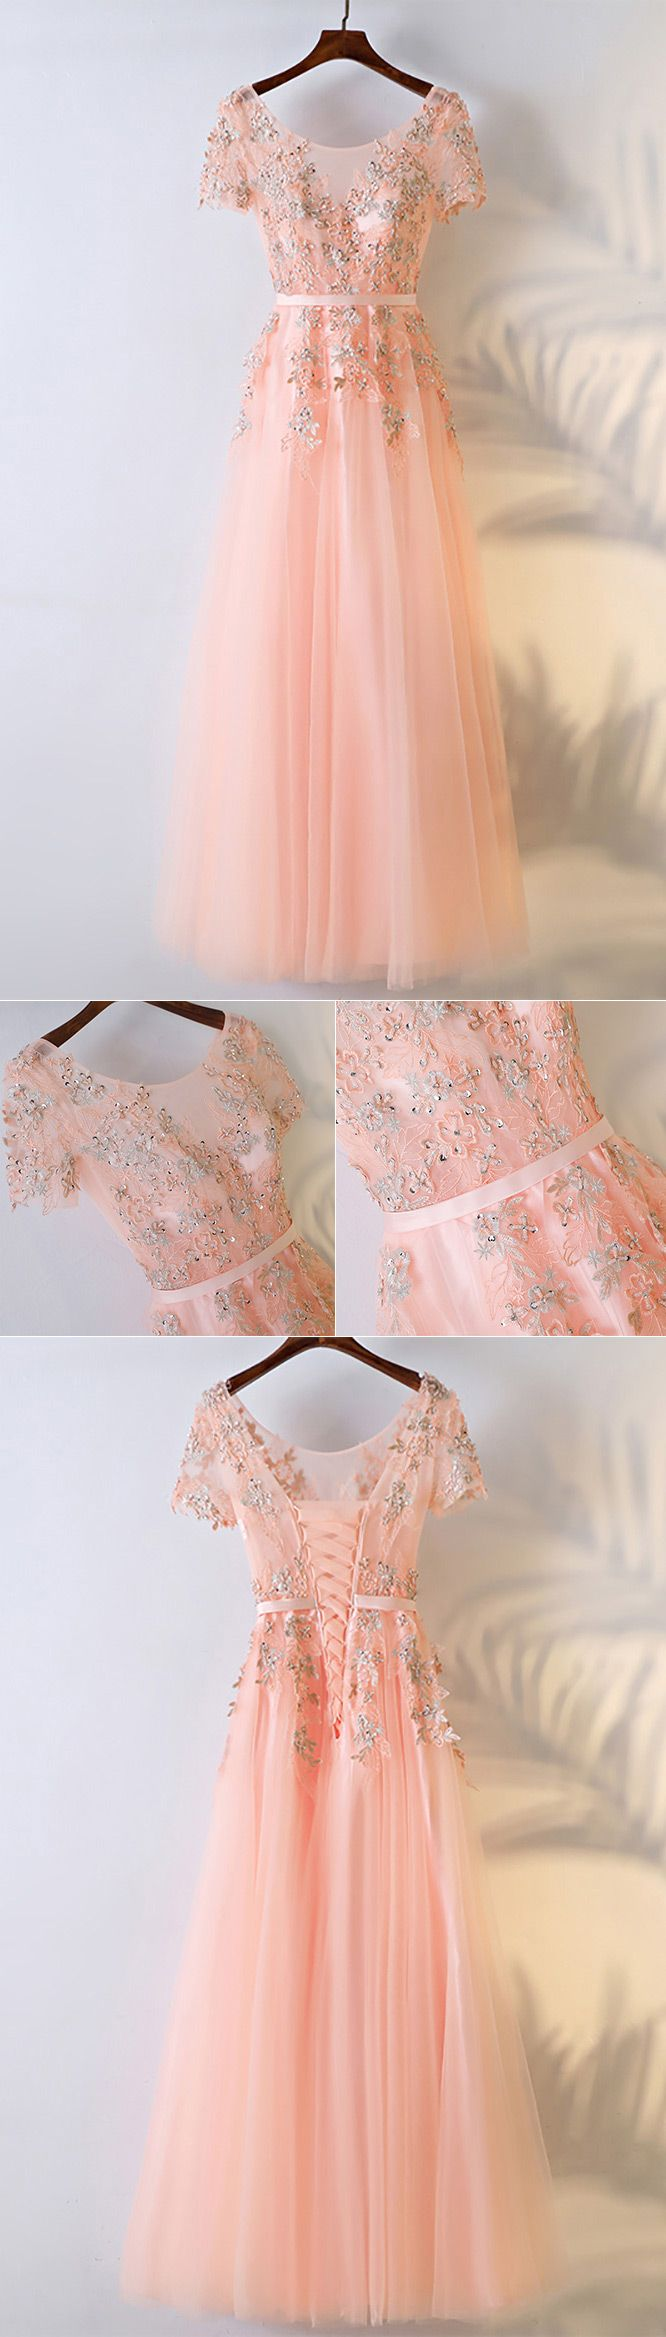 Peachy pink round neck long prom dress with short sleeves myx